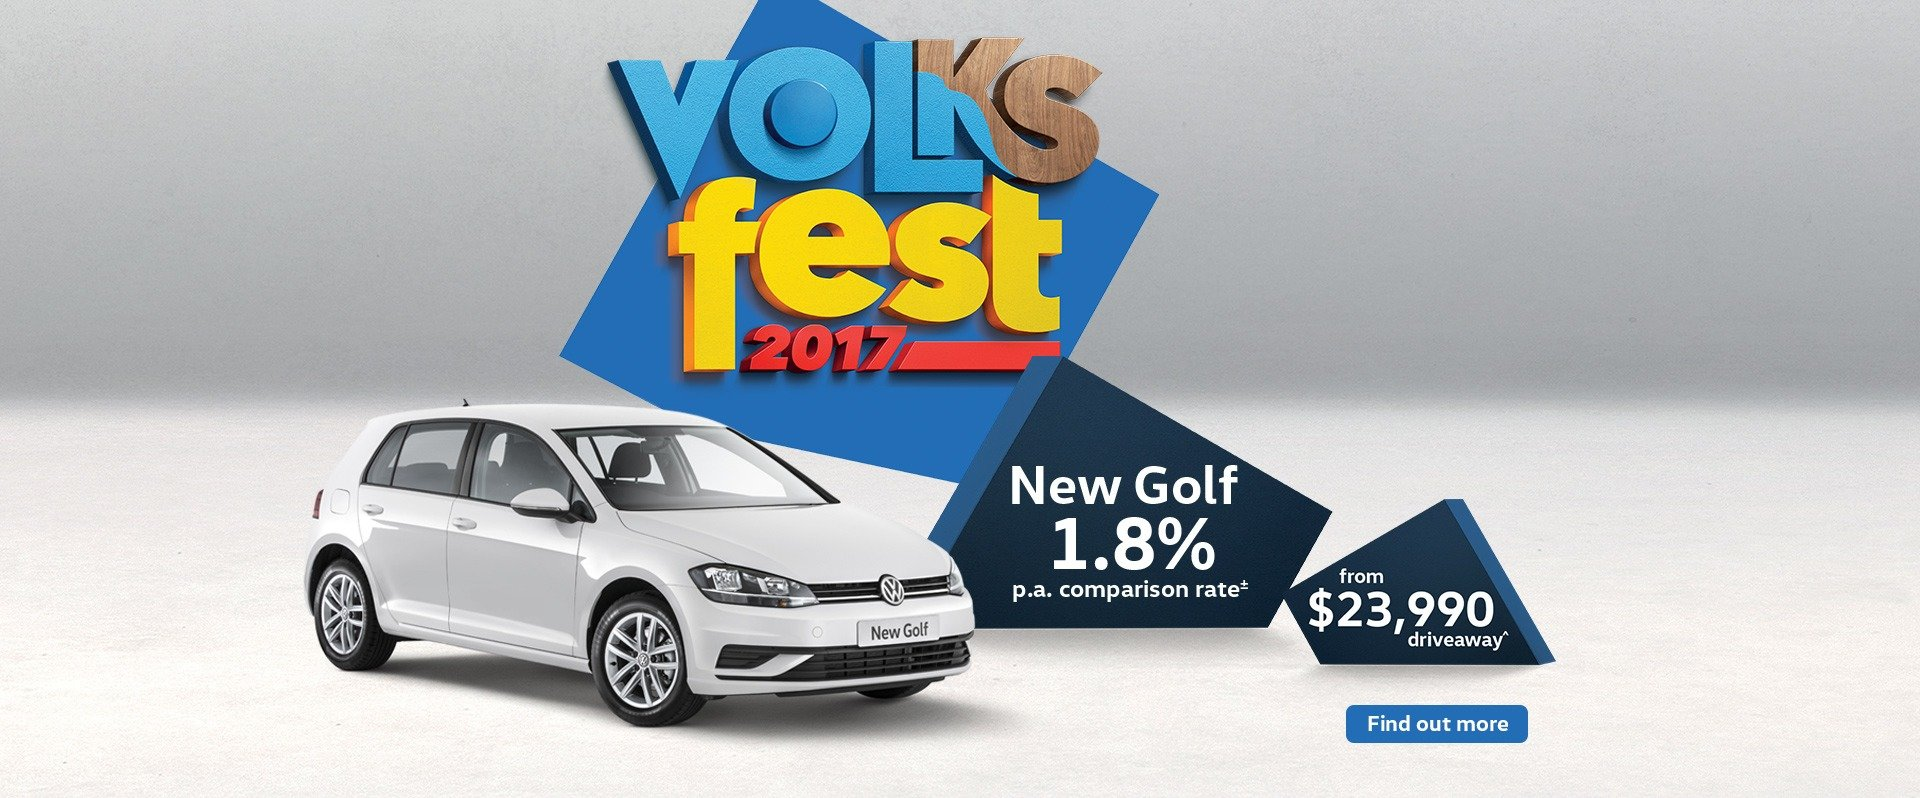 Volks Fest 2017 Offer